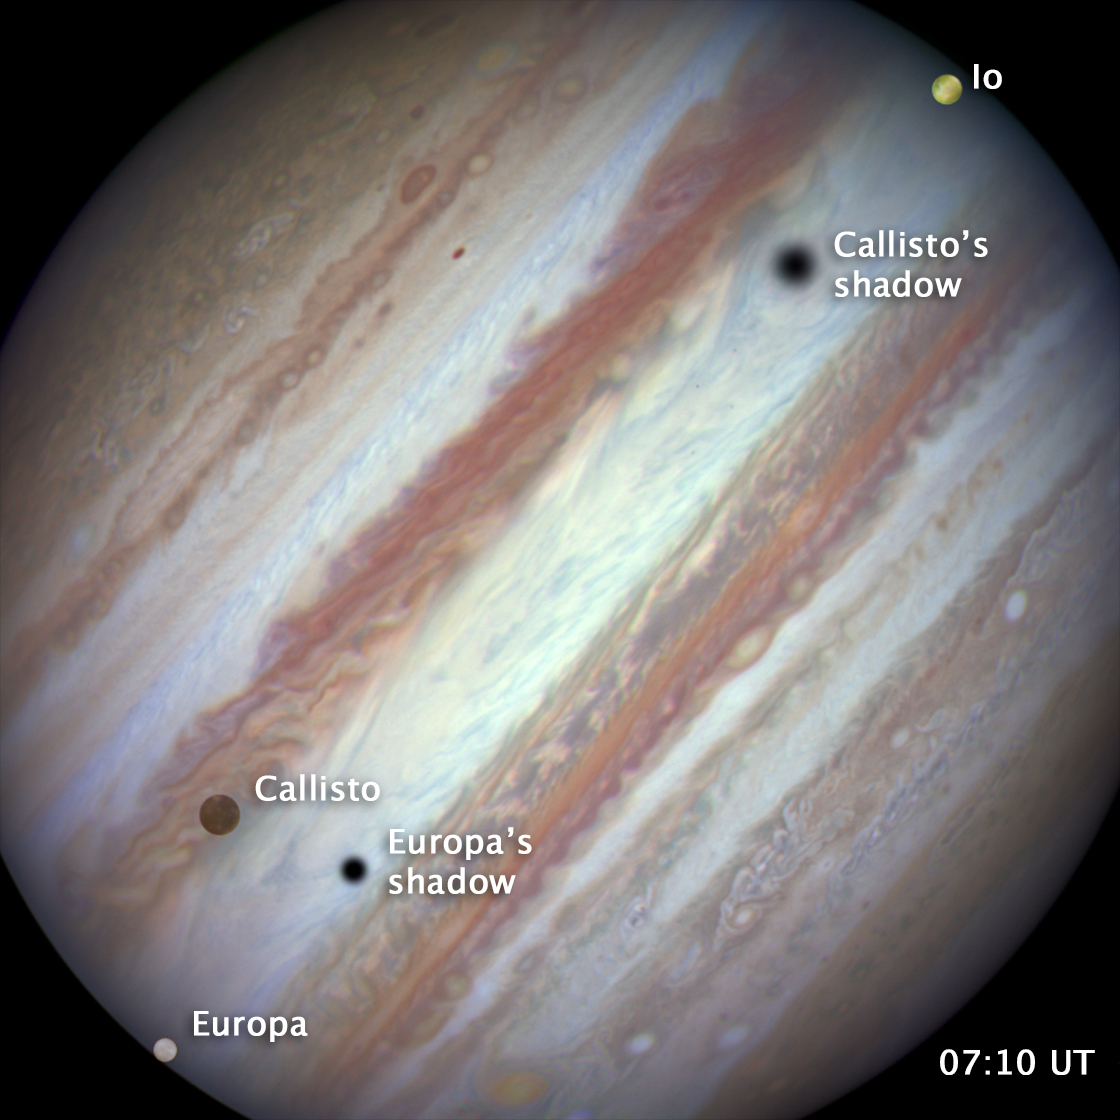 Image of Jupiter with three moons, Europa, Callisto and Io